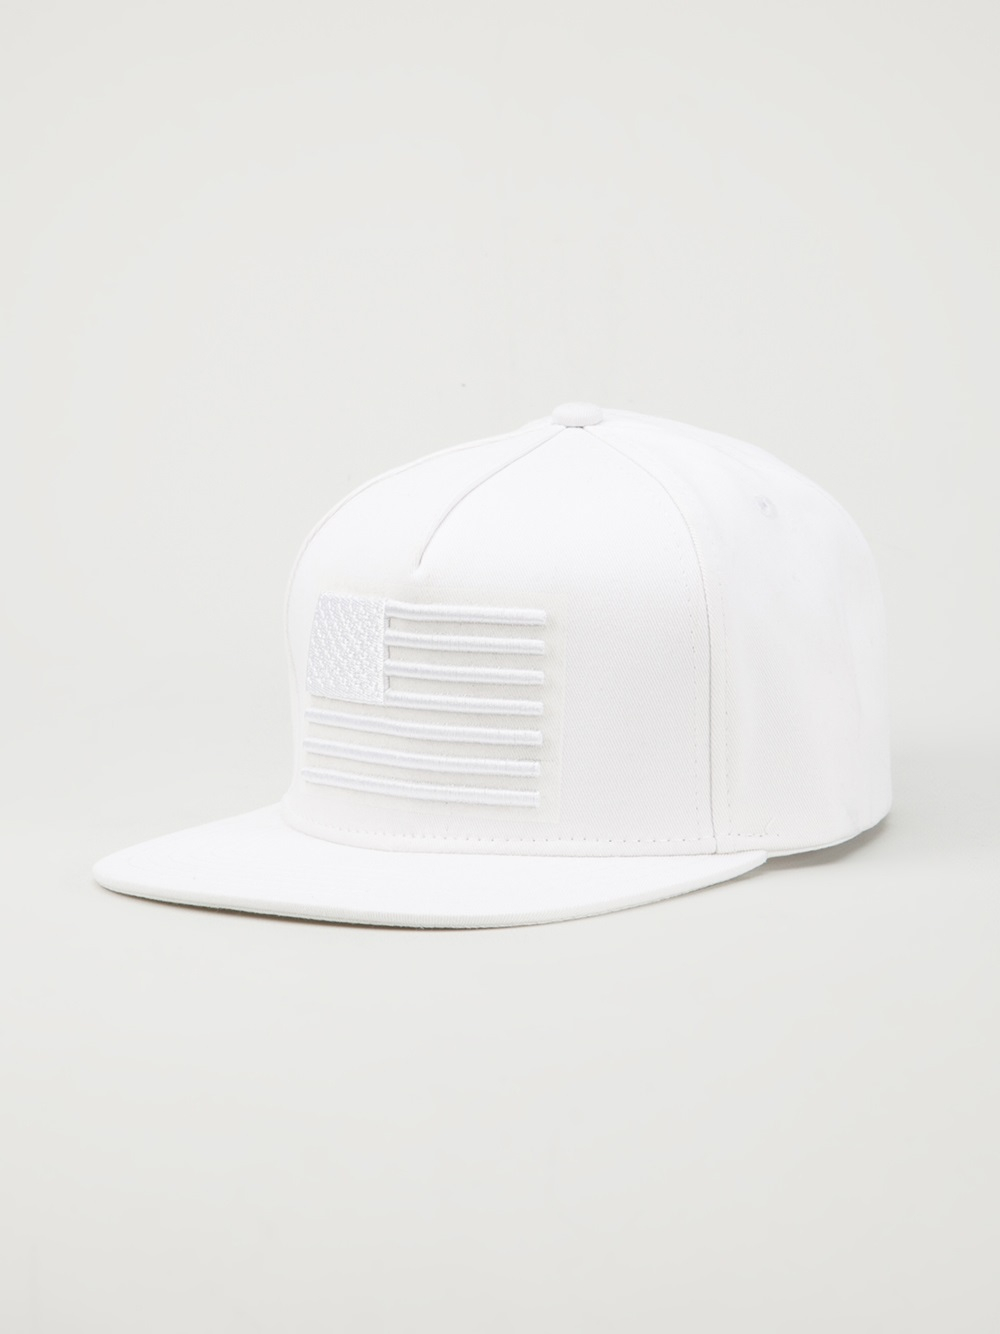 Lyst - Stampd 3d American Flag Hat in White for Men 51eecabb787